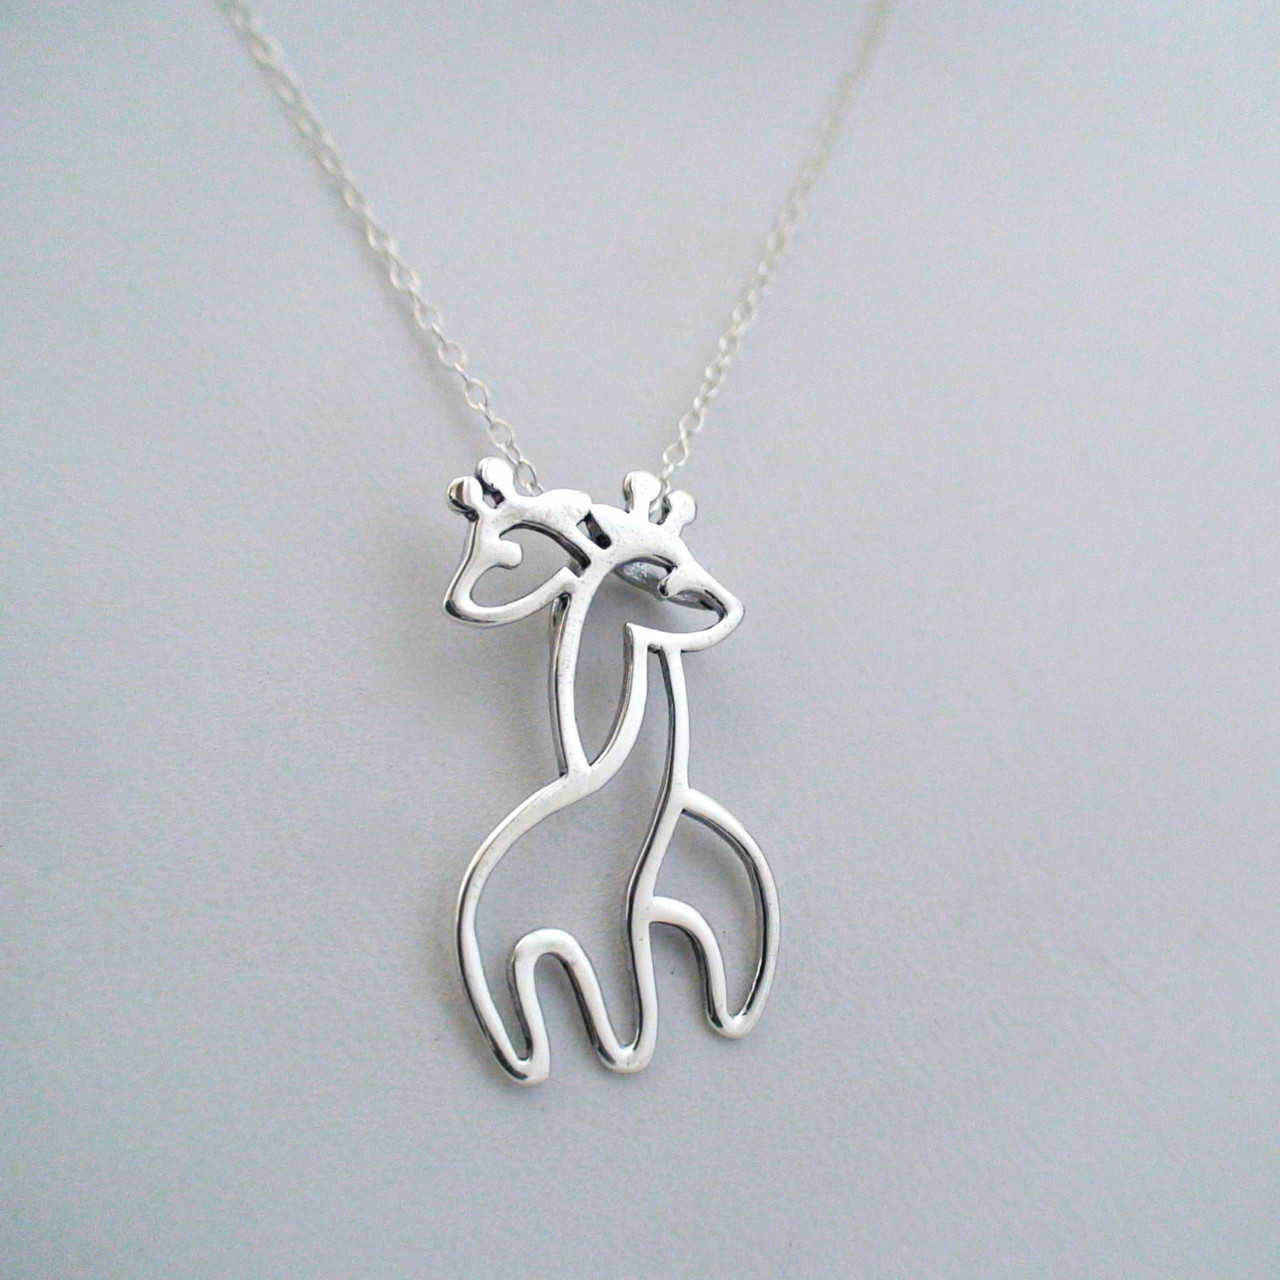 giraffe pendant product necklace